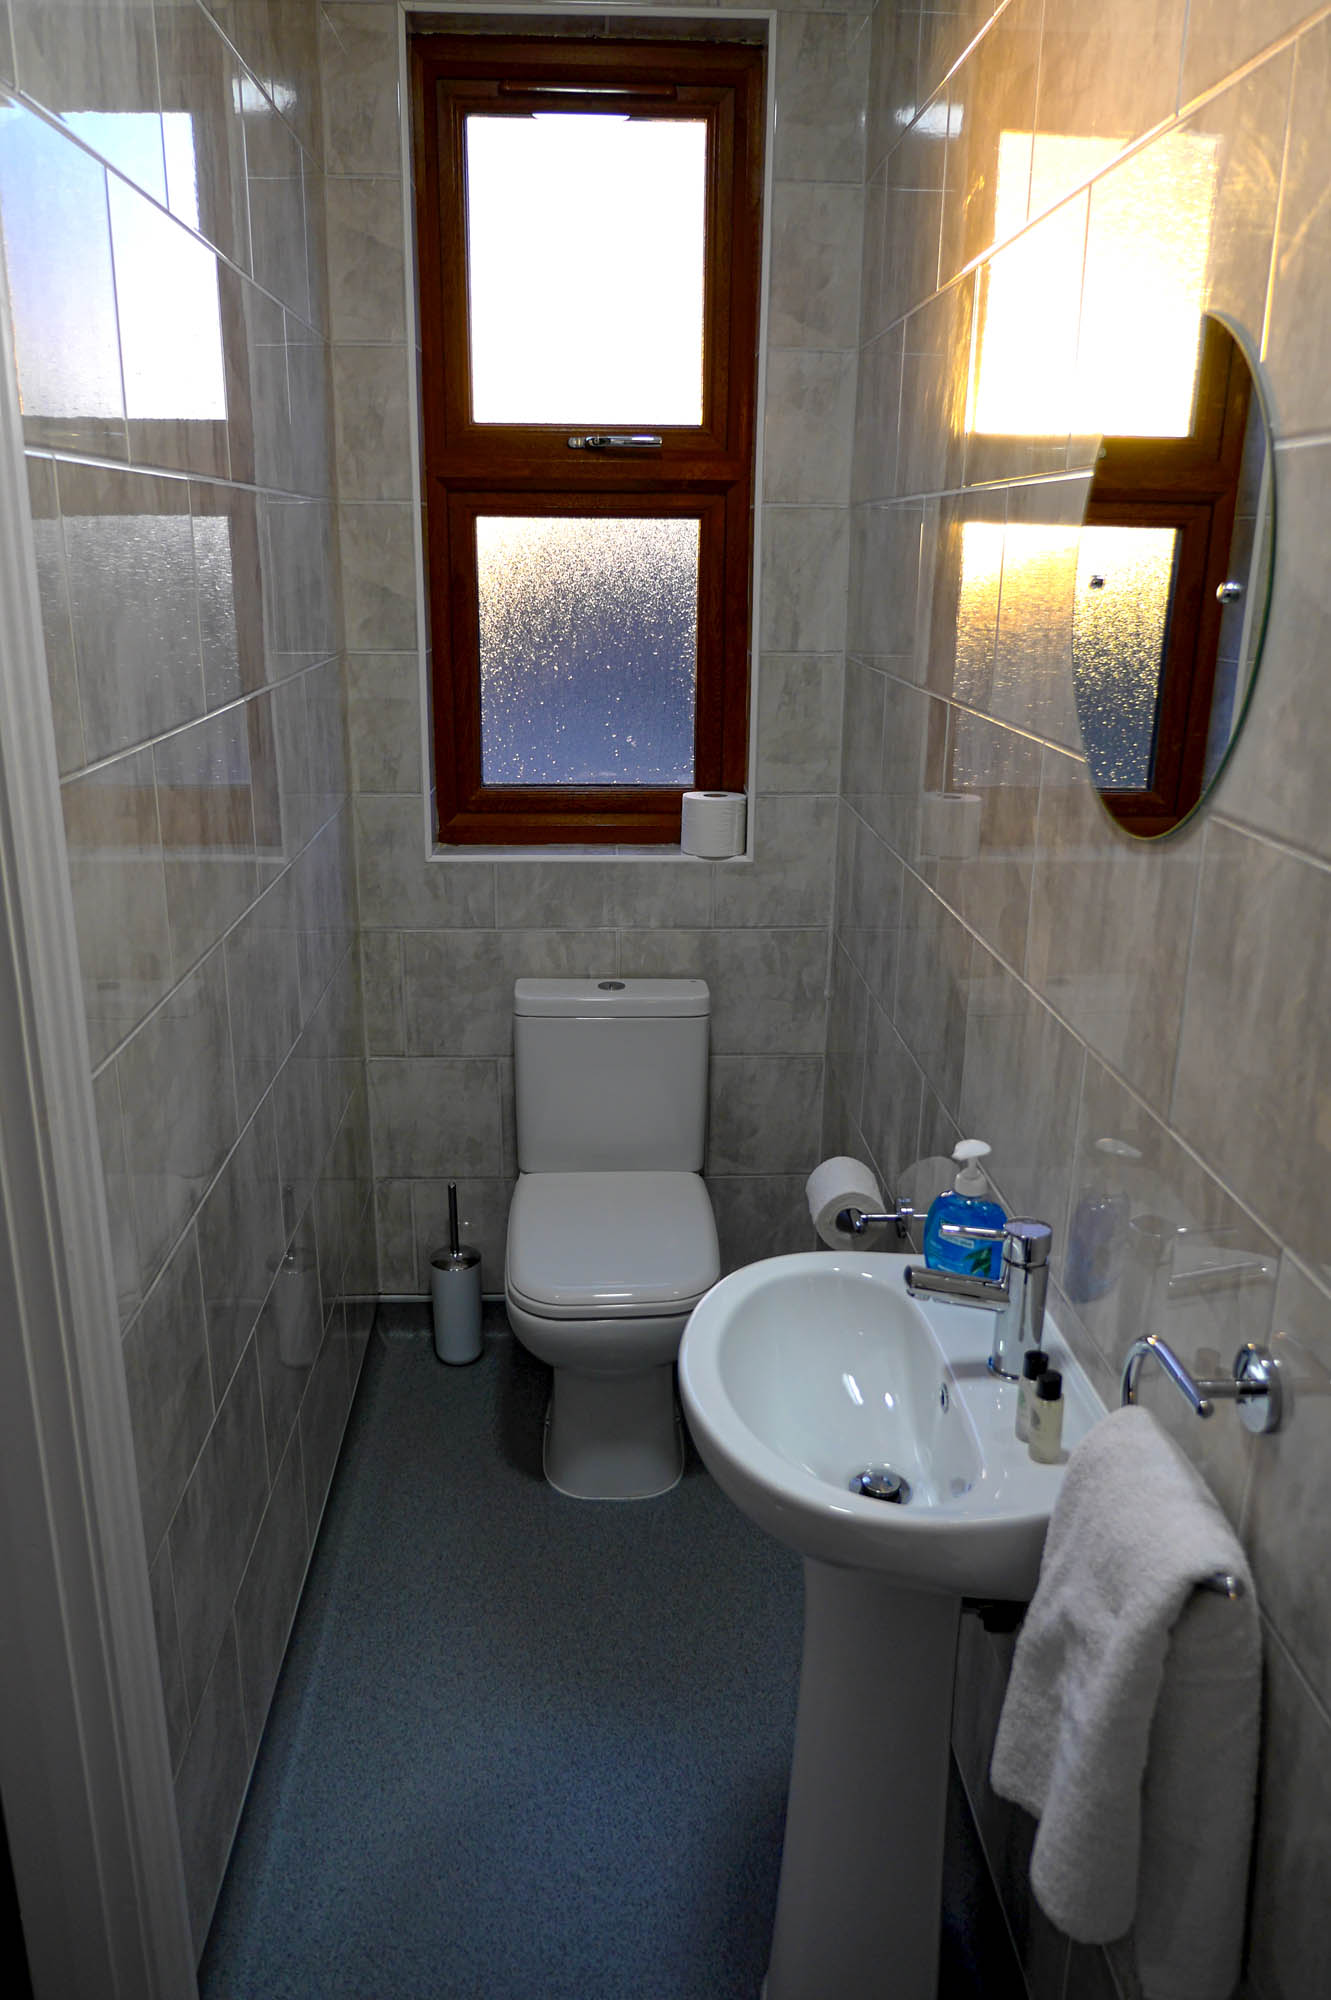 Rosalee - Double Room - Bathroom 01 - 01.jpg